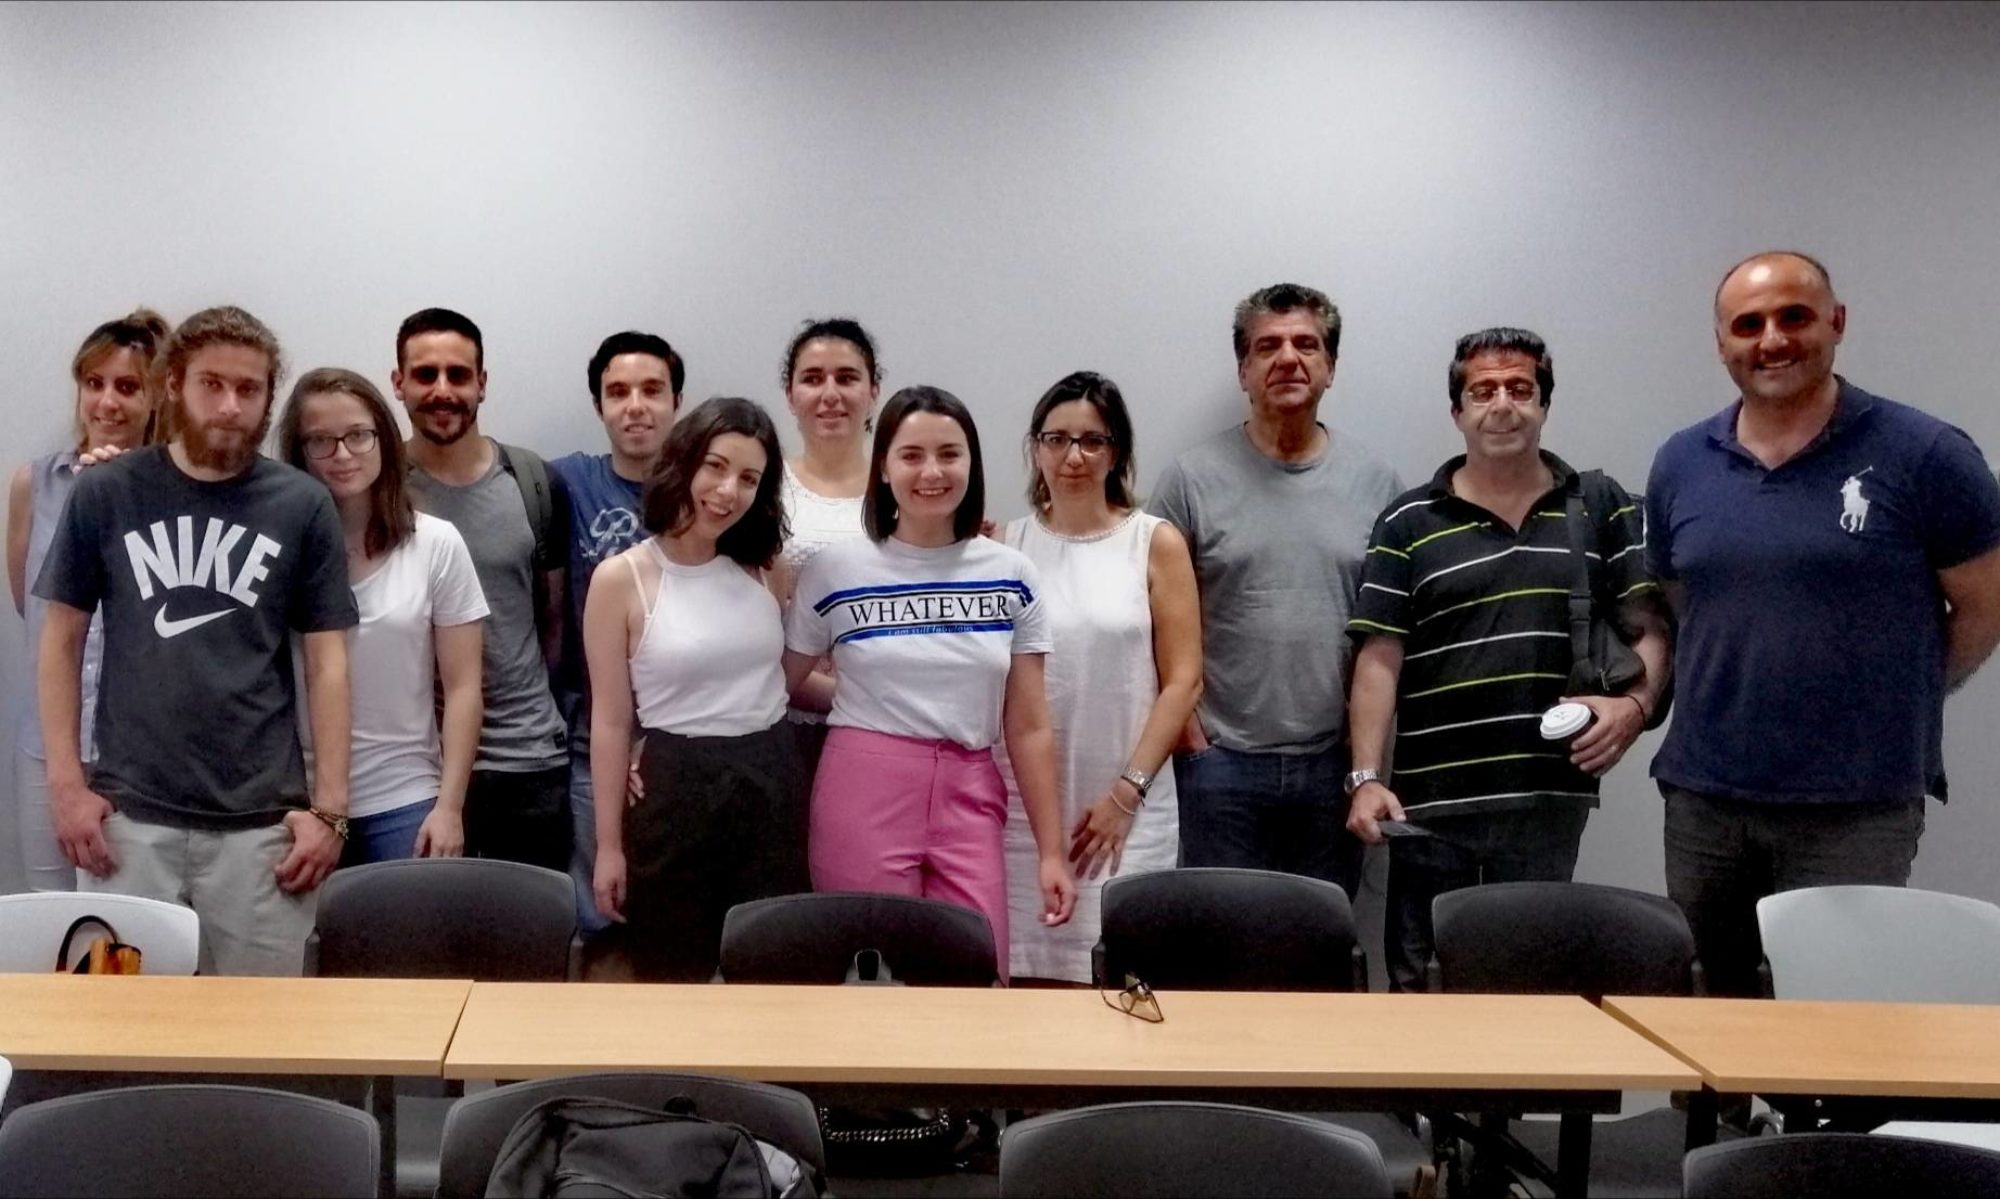 Functional Proteomics and Systems Biology Research Group